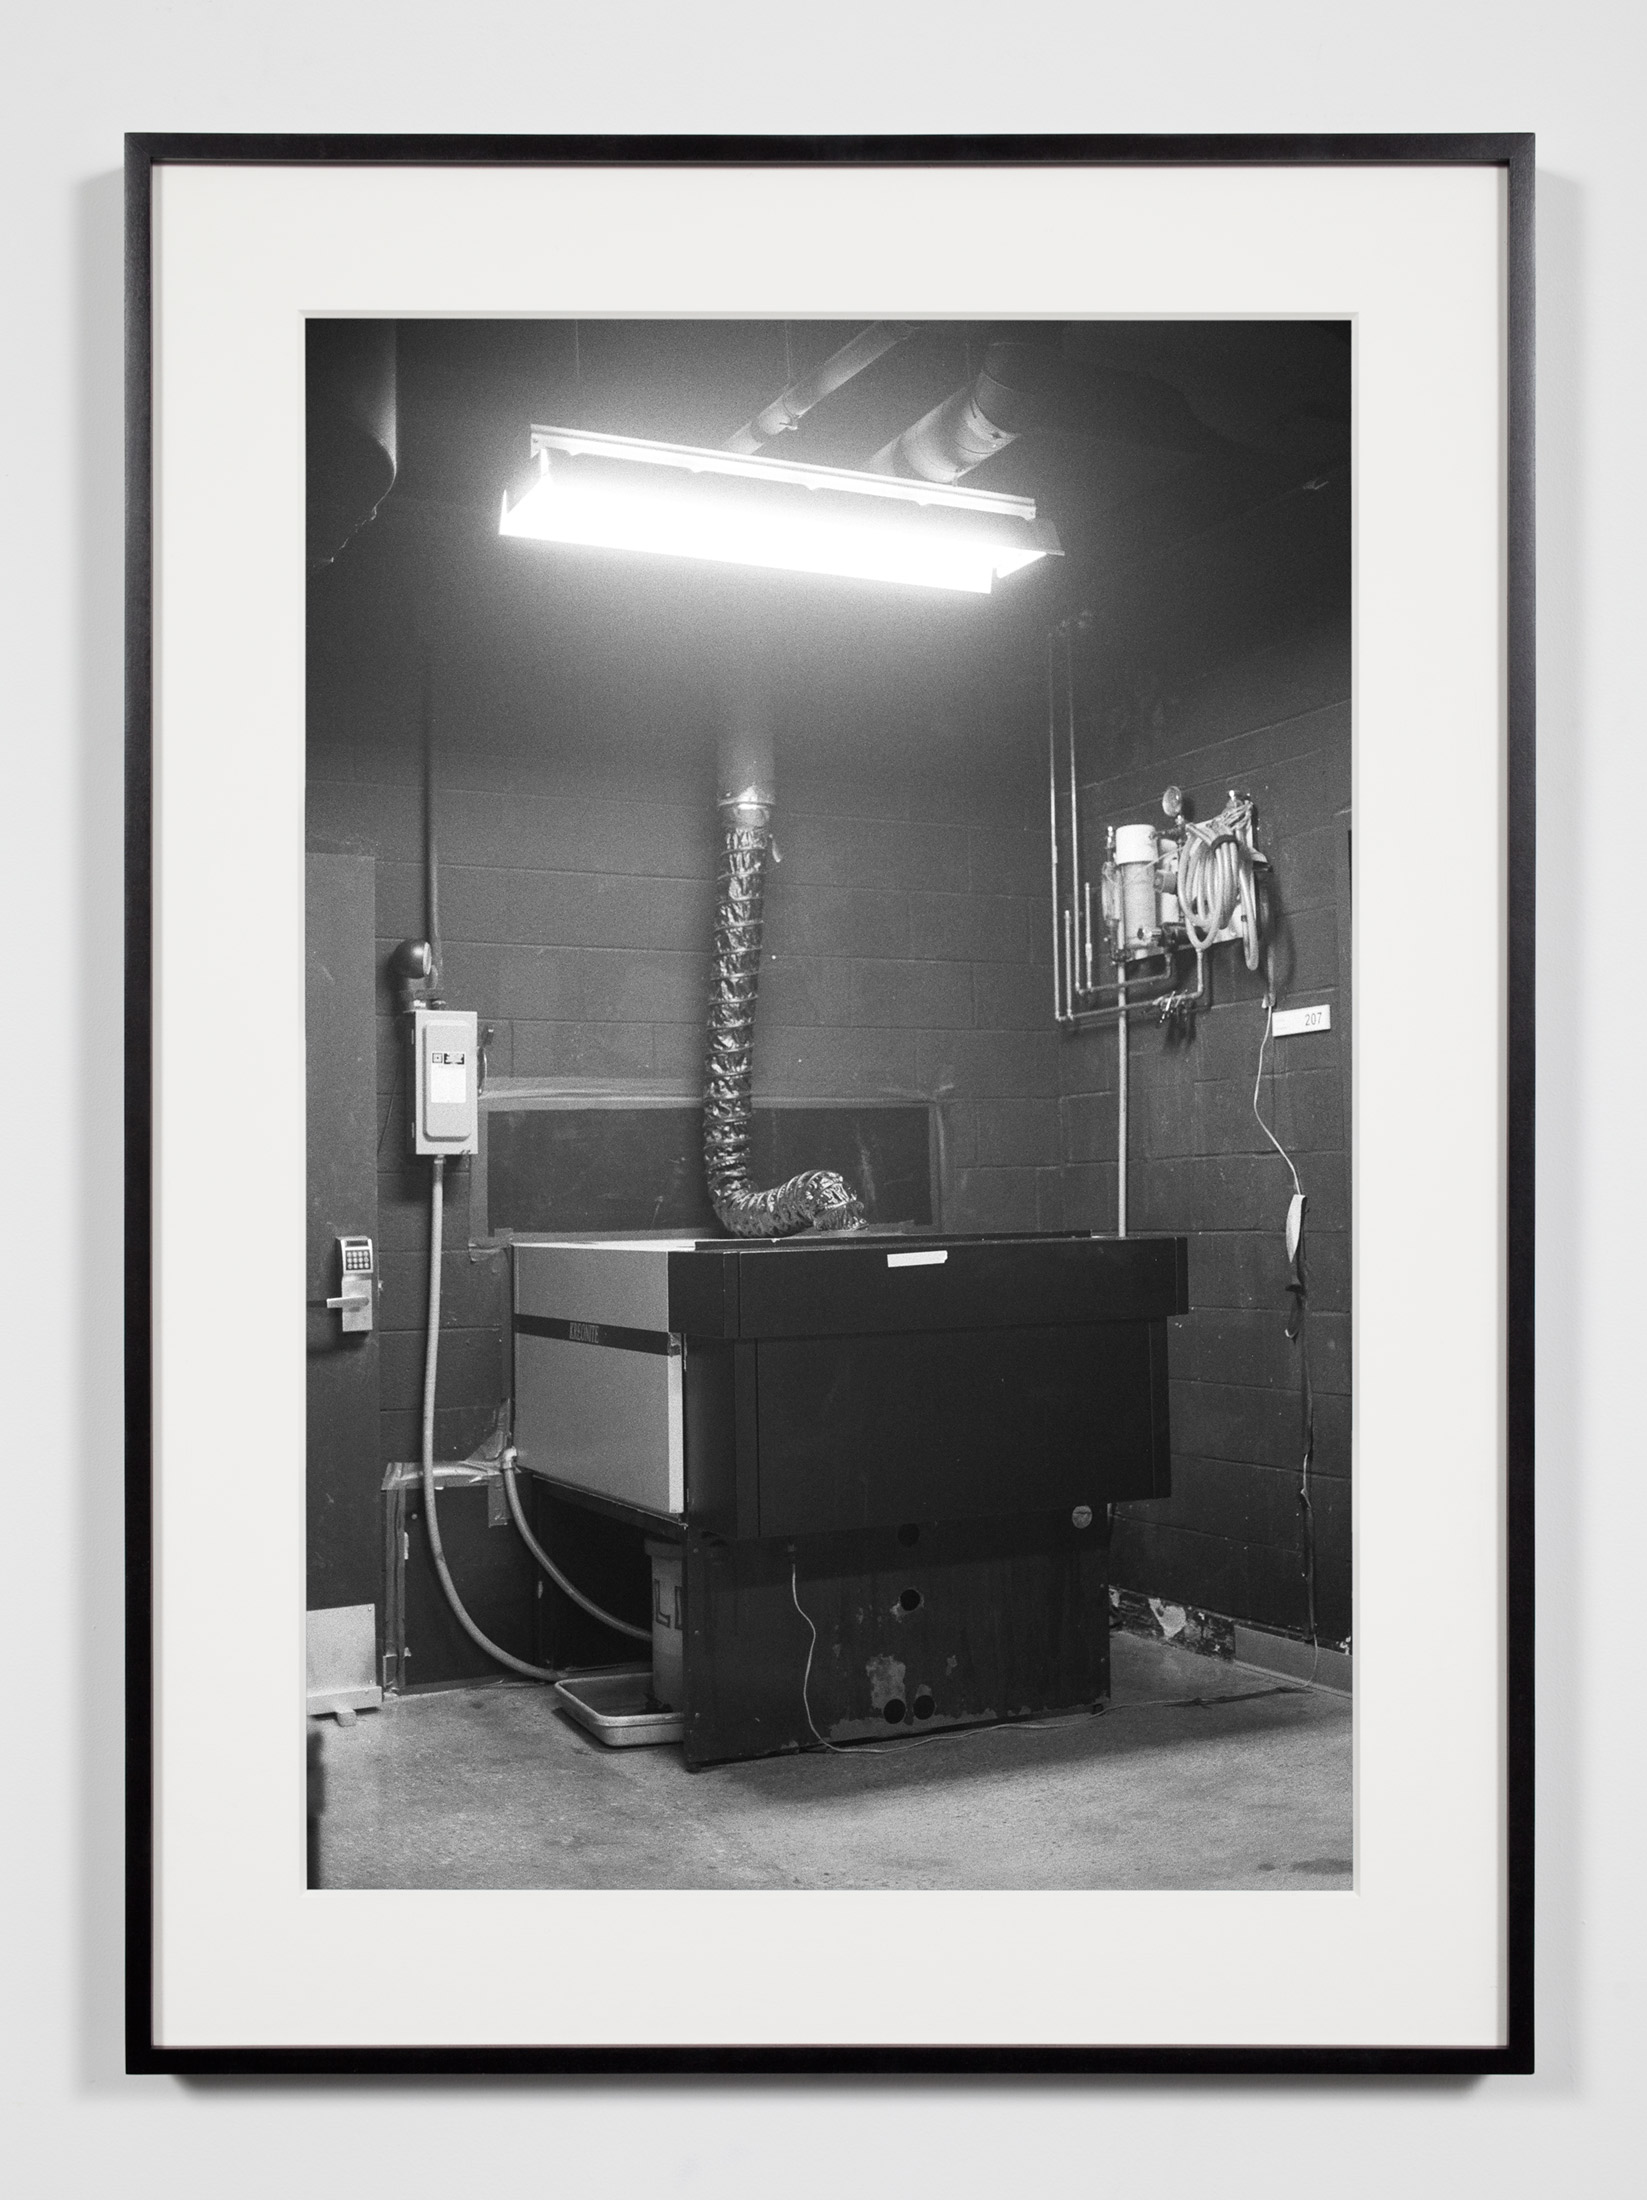 Color Photographic Processor (Hope RA4), Chicago, Illinois, August 21, 2008    2009   Epson Ultrachrome K3 archival ink jet print on Hahnemühle Photo Rag paper  36 3/8 x 26 3/8 inches   Industrial Portraits, 2008–